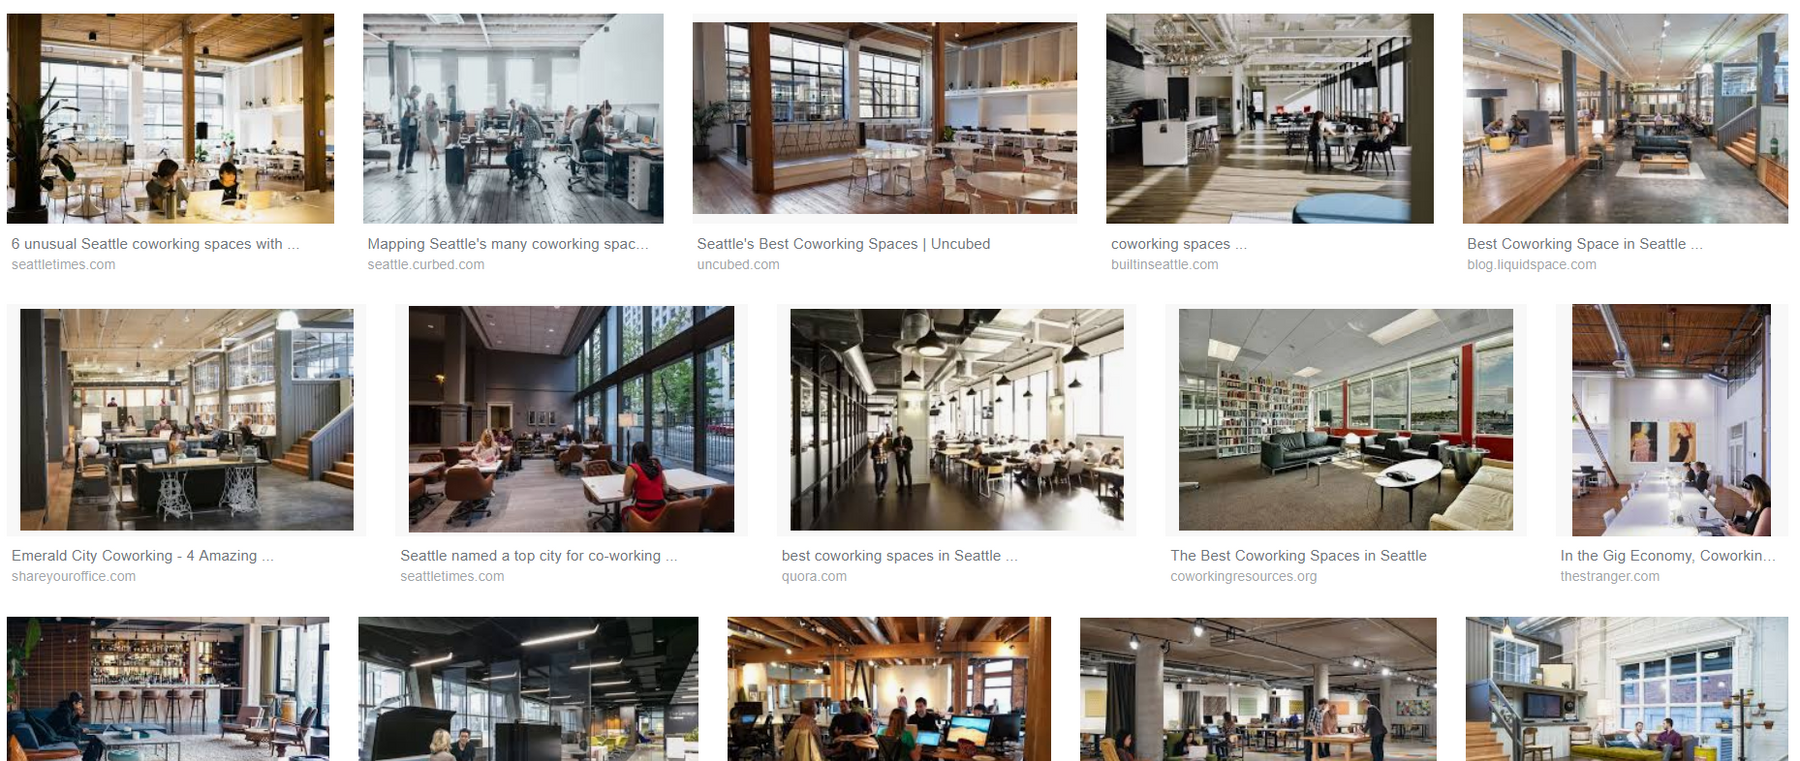 The best 10 co-working spaces in Seattle, WA USA